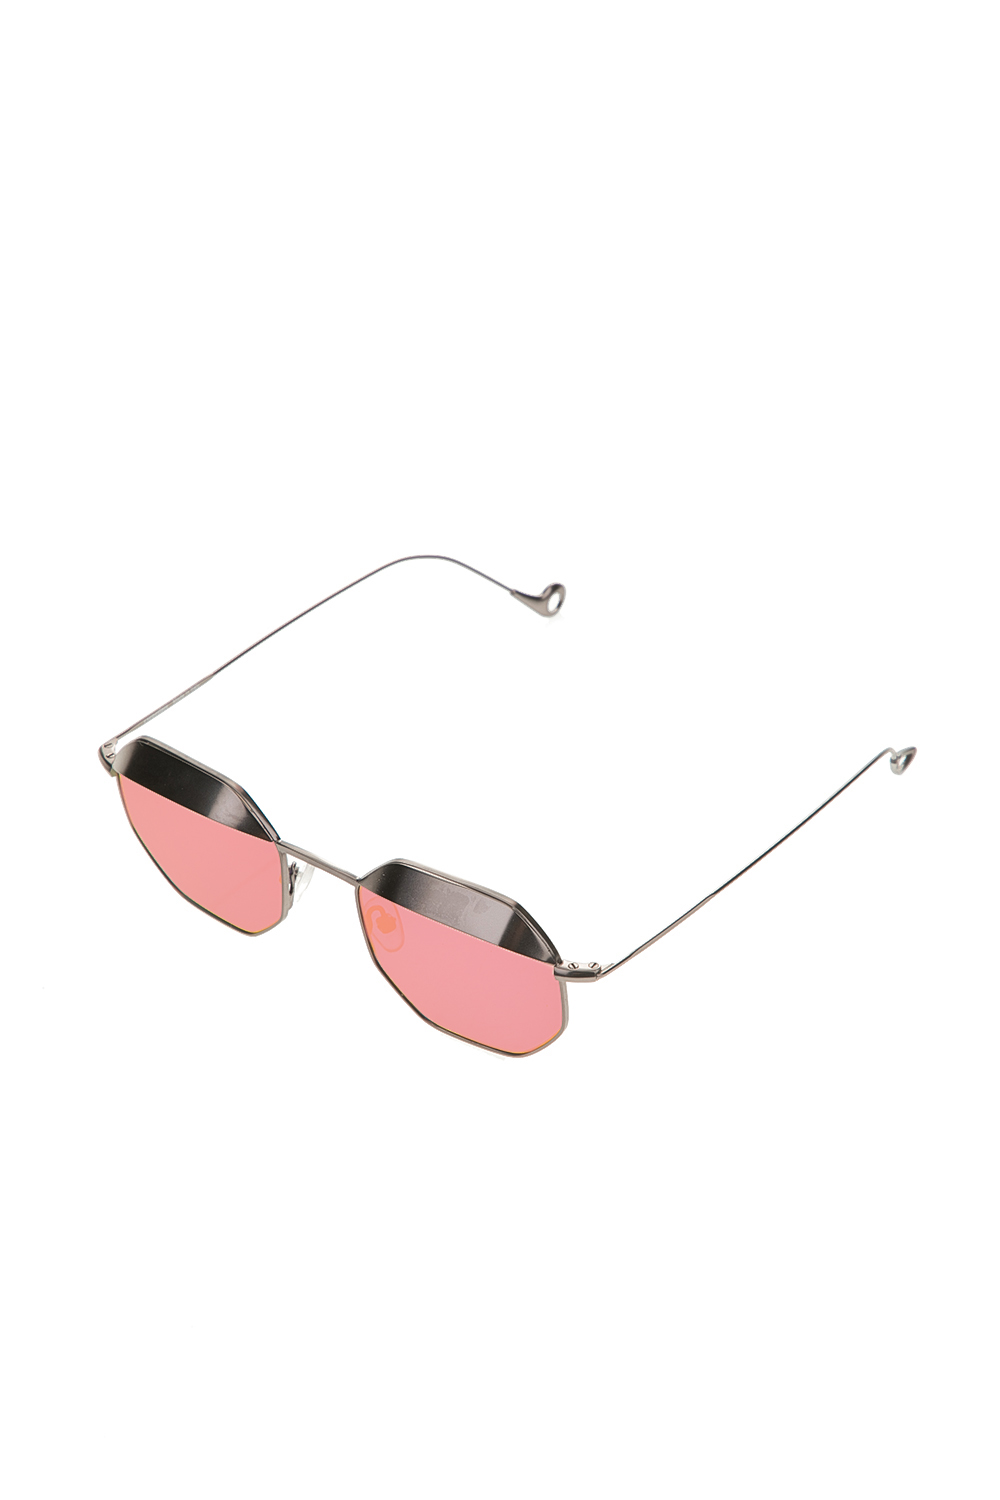 830b9957c7 CollectiveOnline EYEPETIZER - Unisex γυαλιά ηλίου EYEPETIZER VILLETTE  κόκκινα